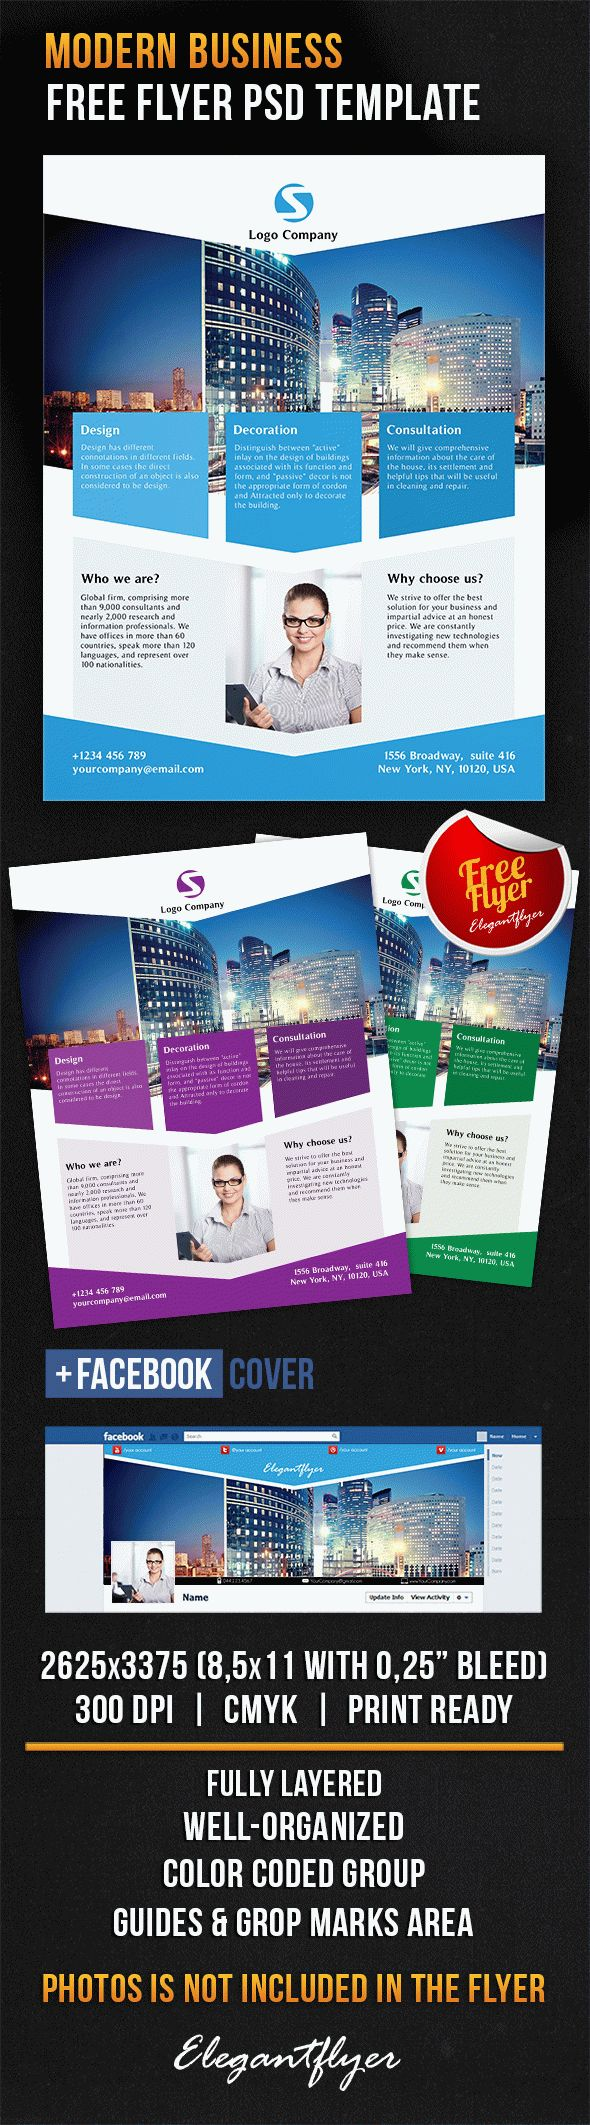 Modern Business – Free Flyer PSD Template